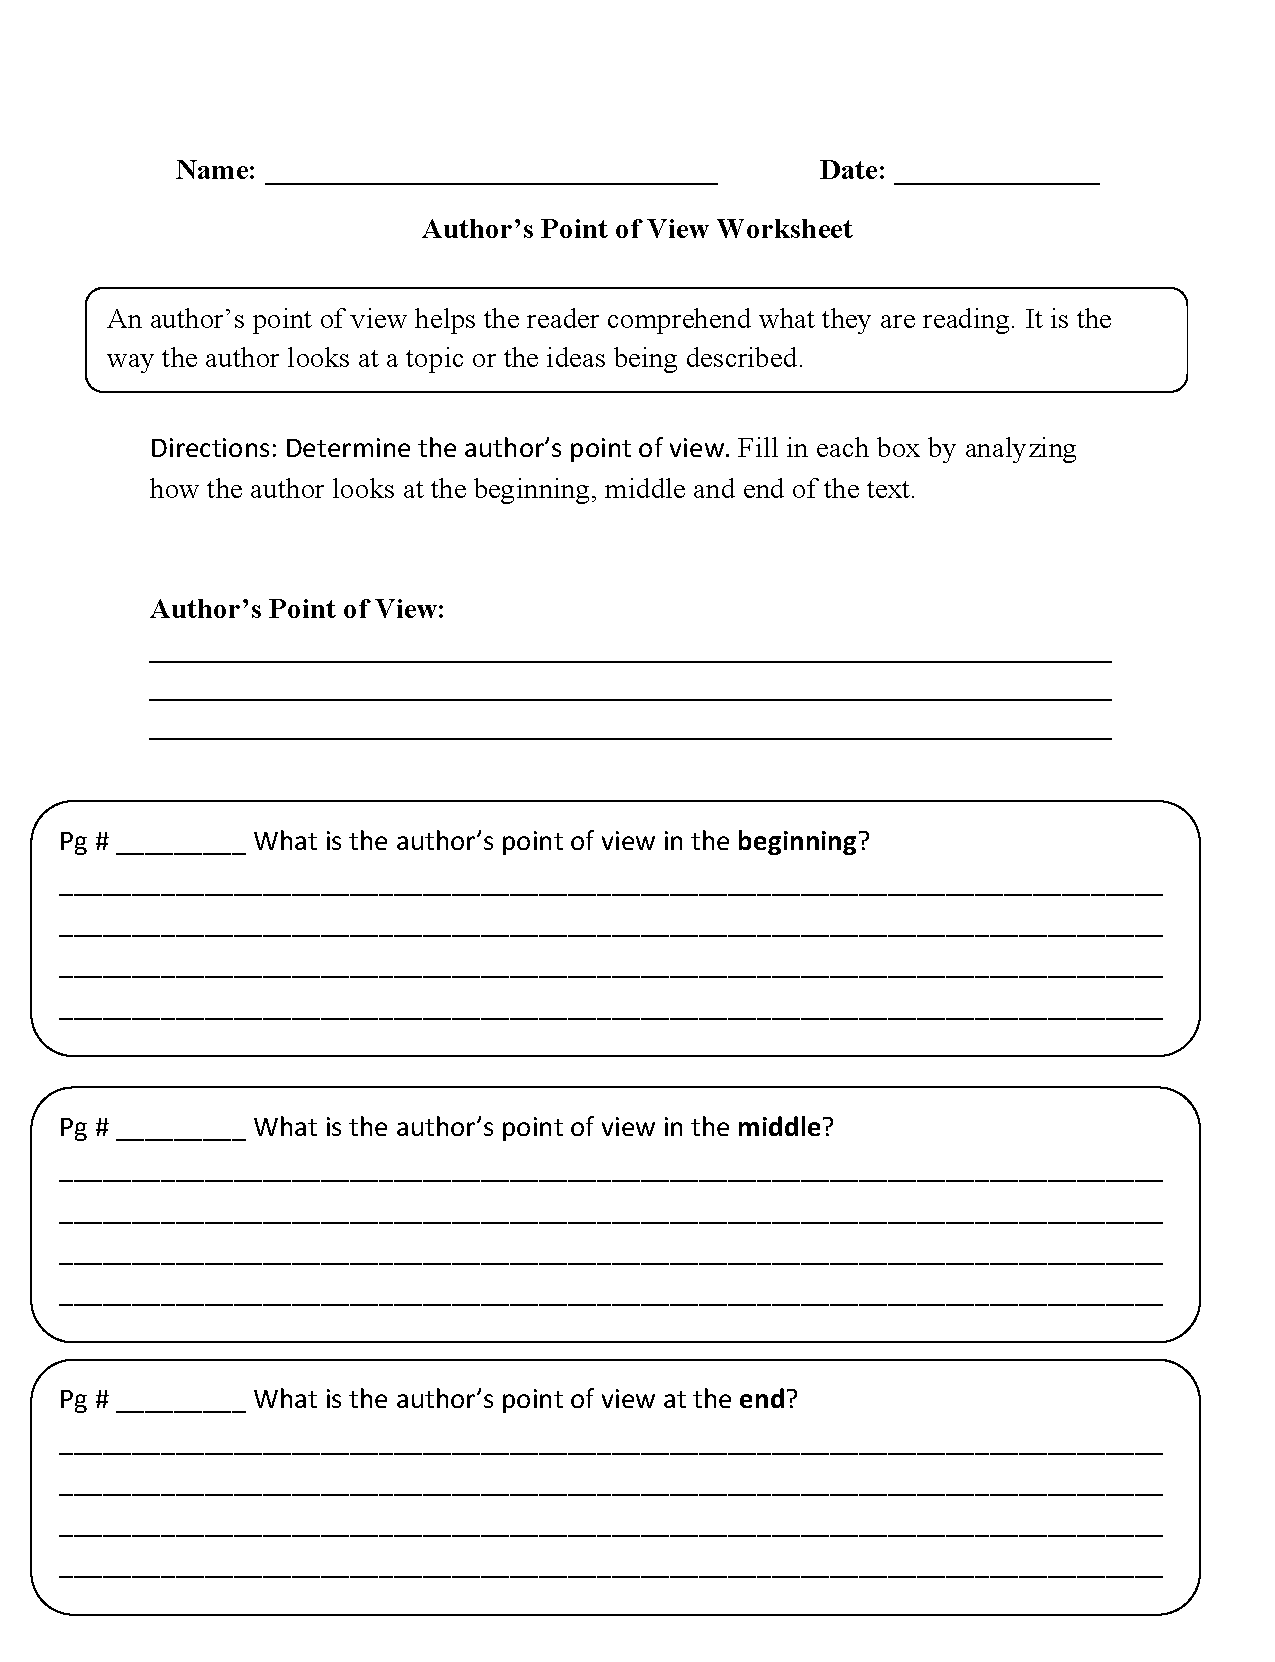 Proatmealus  Unique Englishlinxcom  Point Of View Worksheets With Fair Point Of View Worksheets With Comely Transitive And Intransitive Worksheets Also English Sentence Structure Worksheets In Addition Growing Patterns Worksheets Grade  And Preschool Maths Worksheets As Well As Grade  Music Theory Worksheets Additionally Physical Activity Worksheet From Englishlinxcom With Proatmealus  Fair Englishlinxcom  Point Of View Worksheets With Comely Point Of View Worksheets And Unique Transitive And Intransitive Worksheets Also English Sentence Structure Worksheets In Addition Growing Patterns Worksheets Grade  From Englishlinxcom